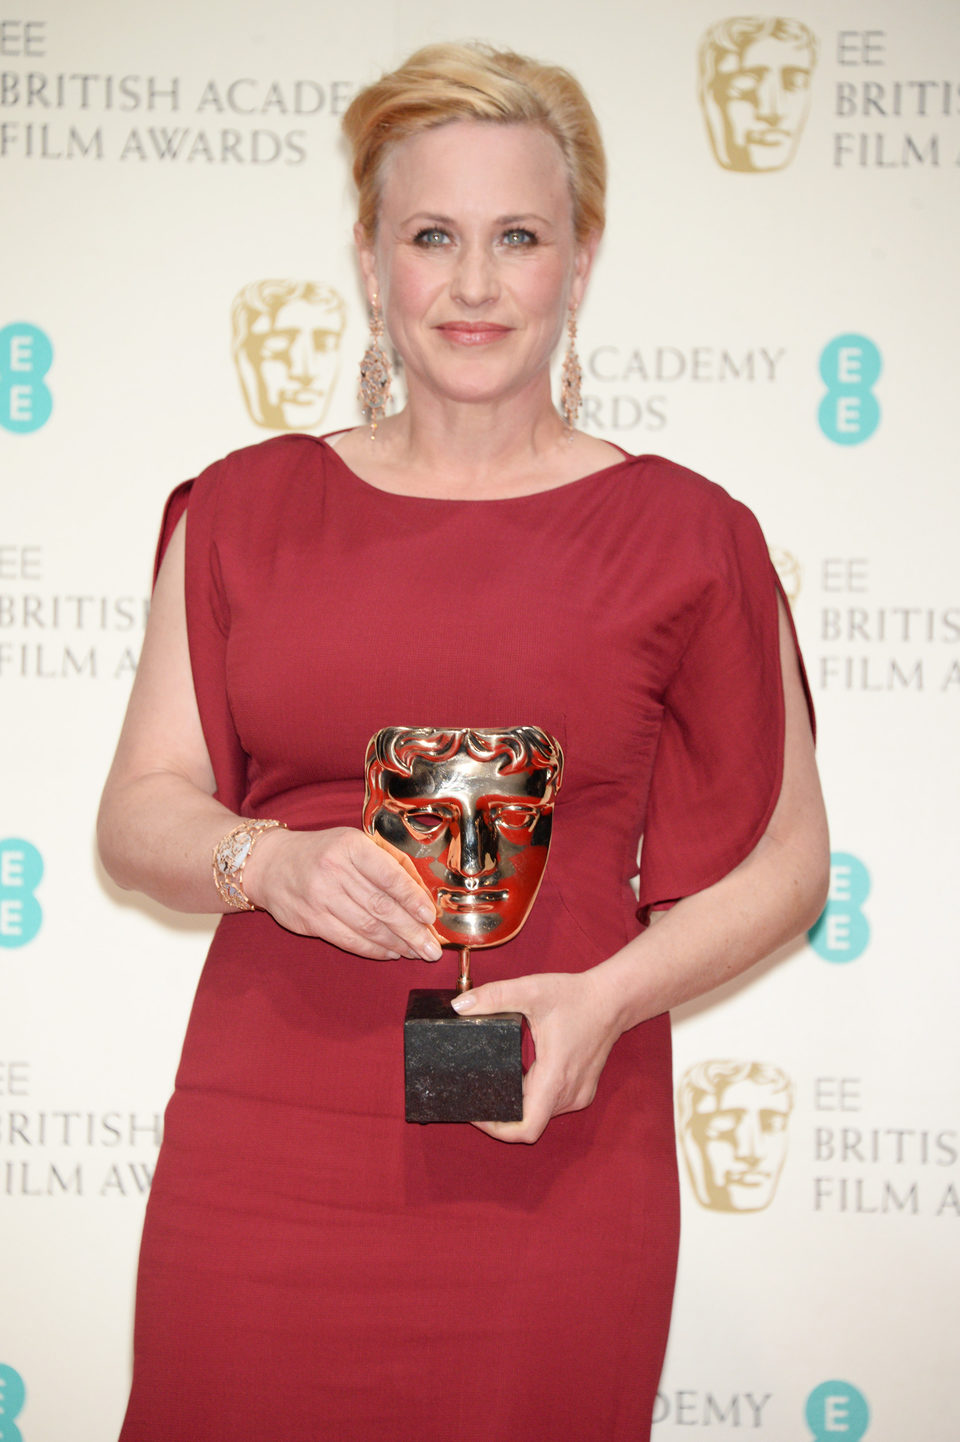 Patricia Arquette, best suporting actress winner at BAFTA 2015